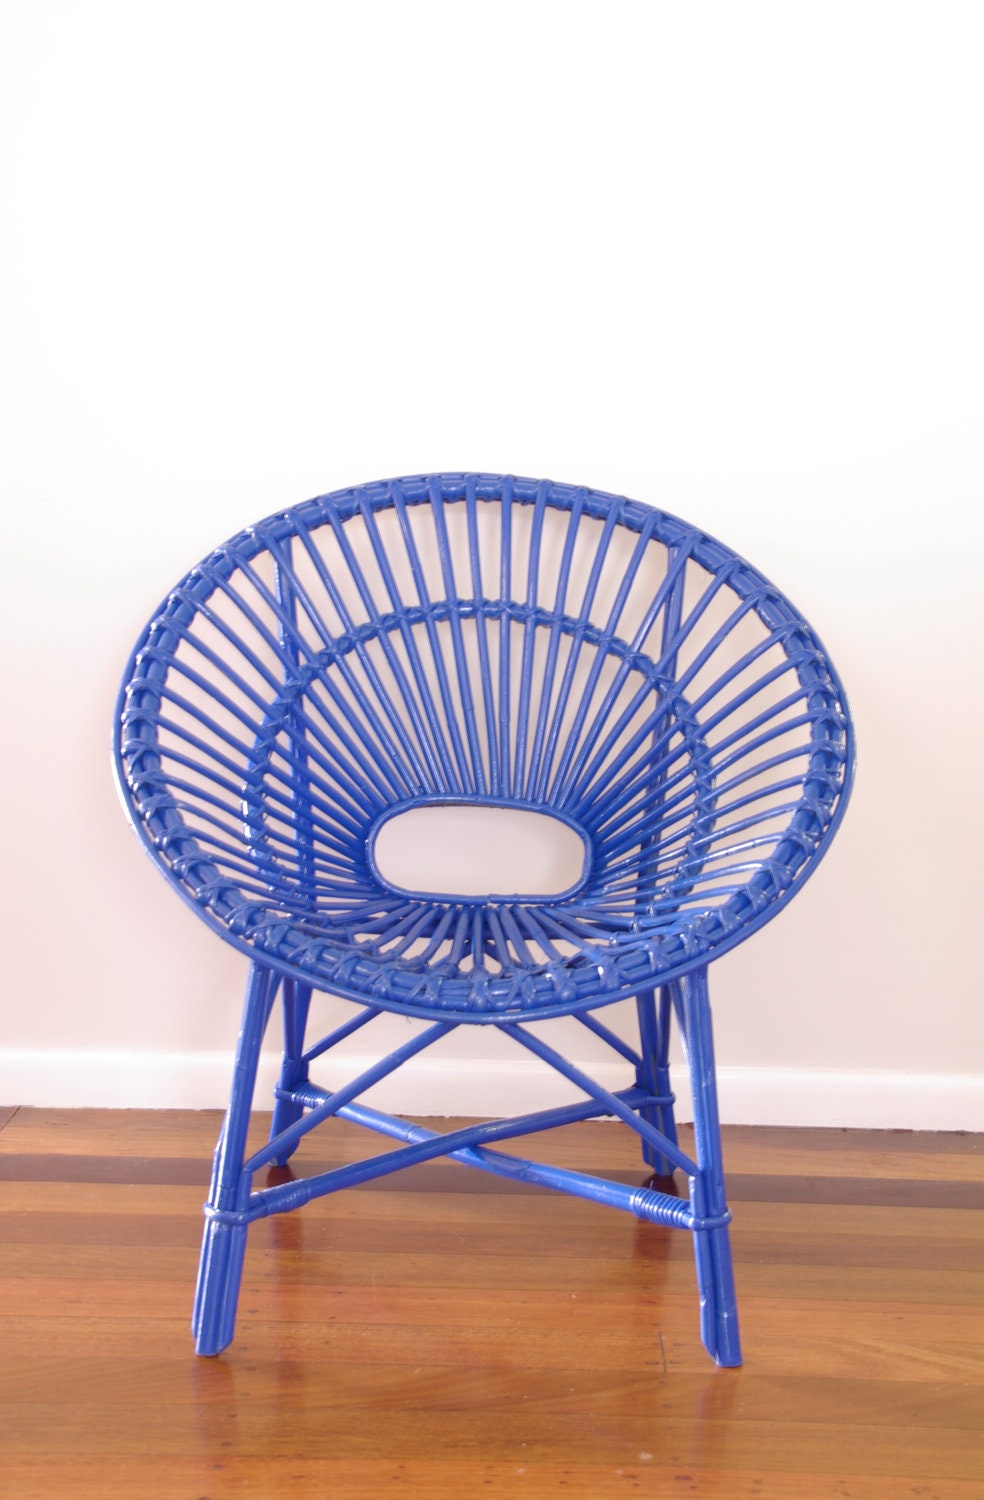 CUSTOM Upcycled Vintage Cane Saucer Chair - NeonVintageDesign